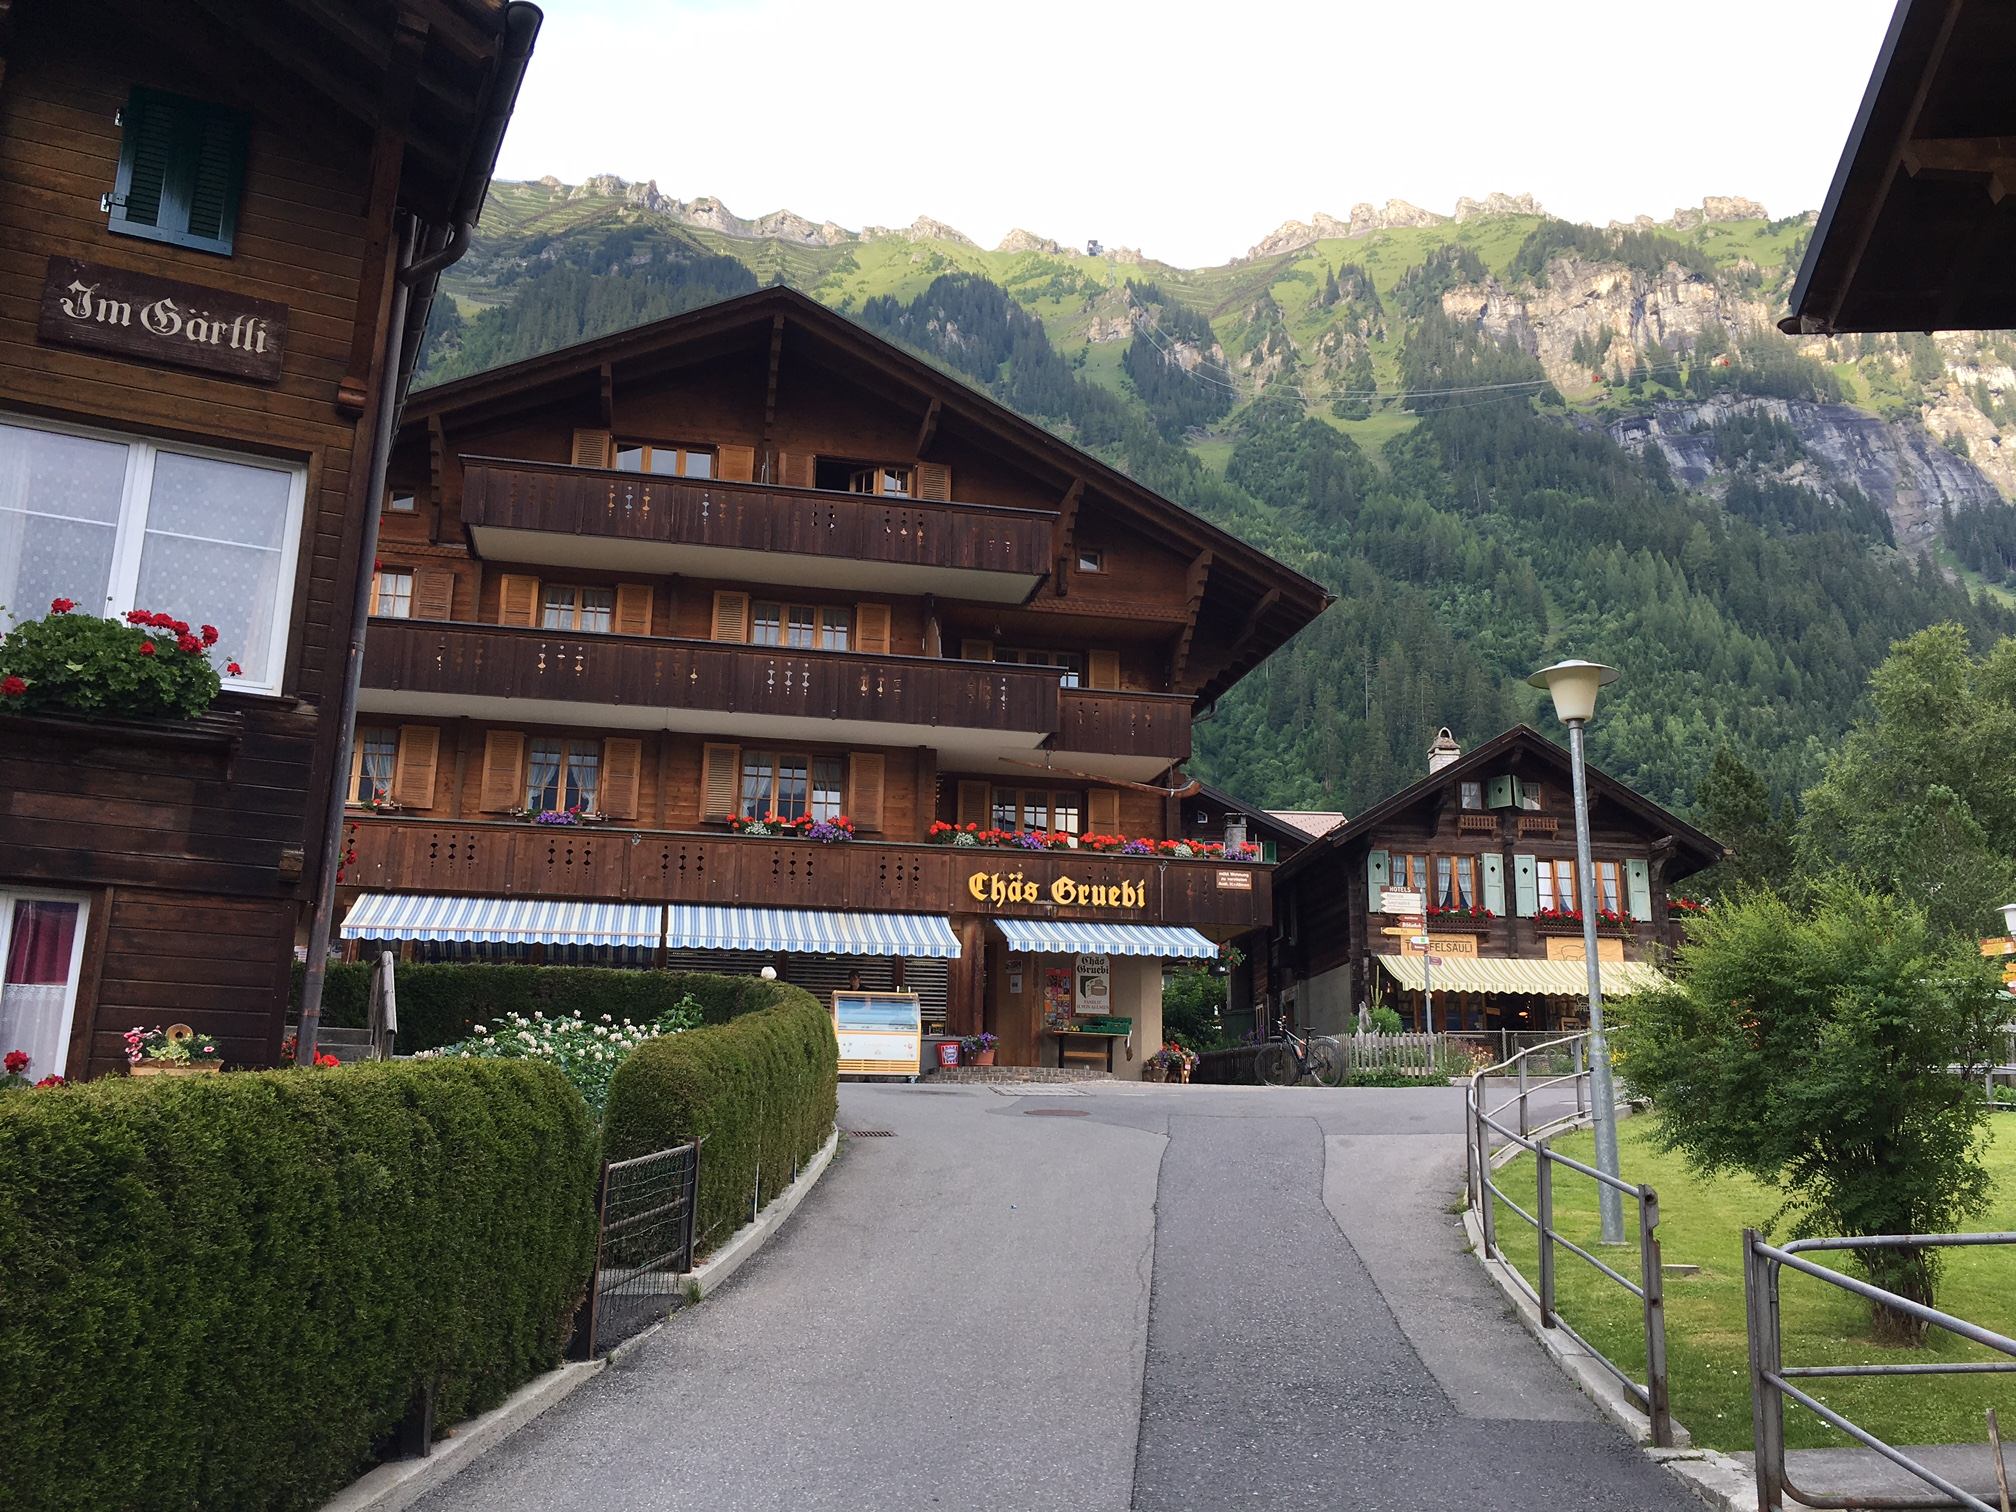 The Chäs Gruebi shop in Wengen (on the way back to the Beausite Park Hotel).